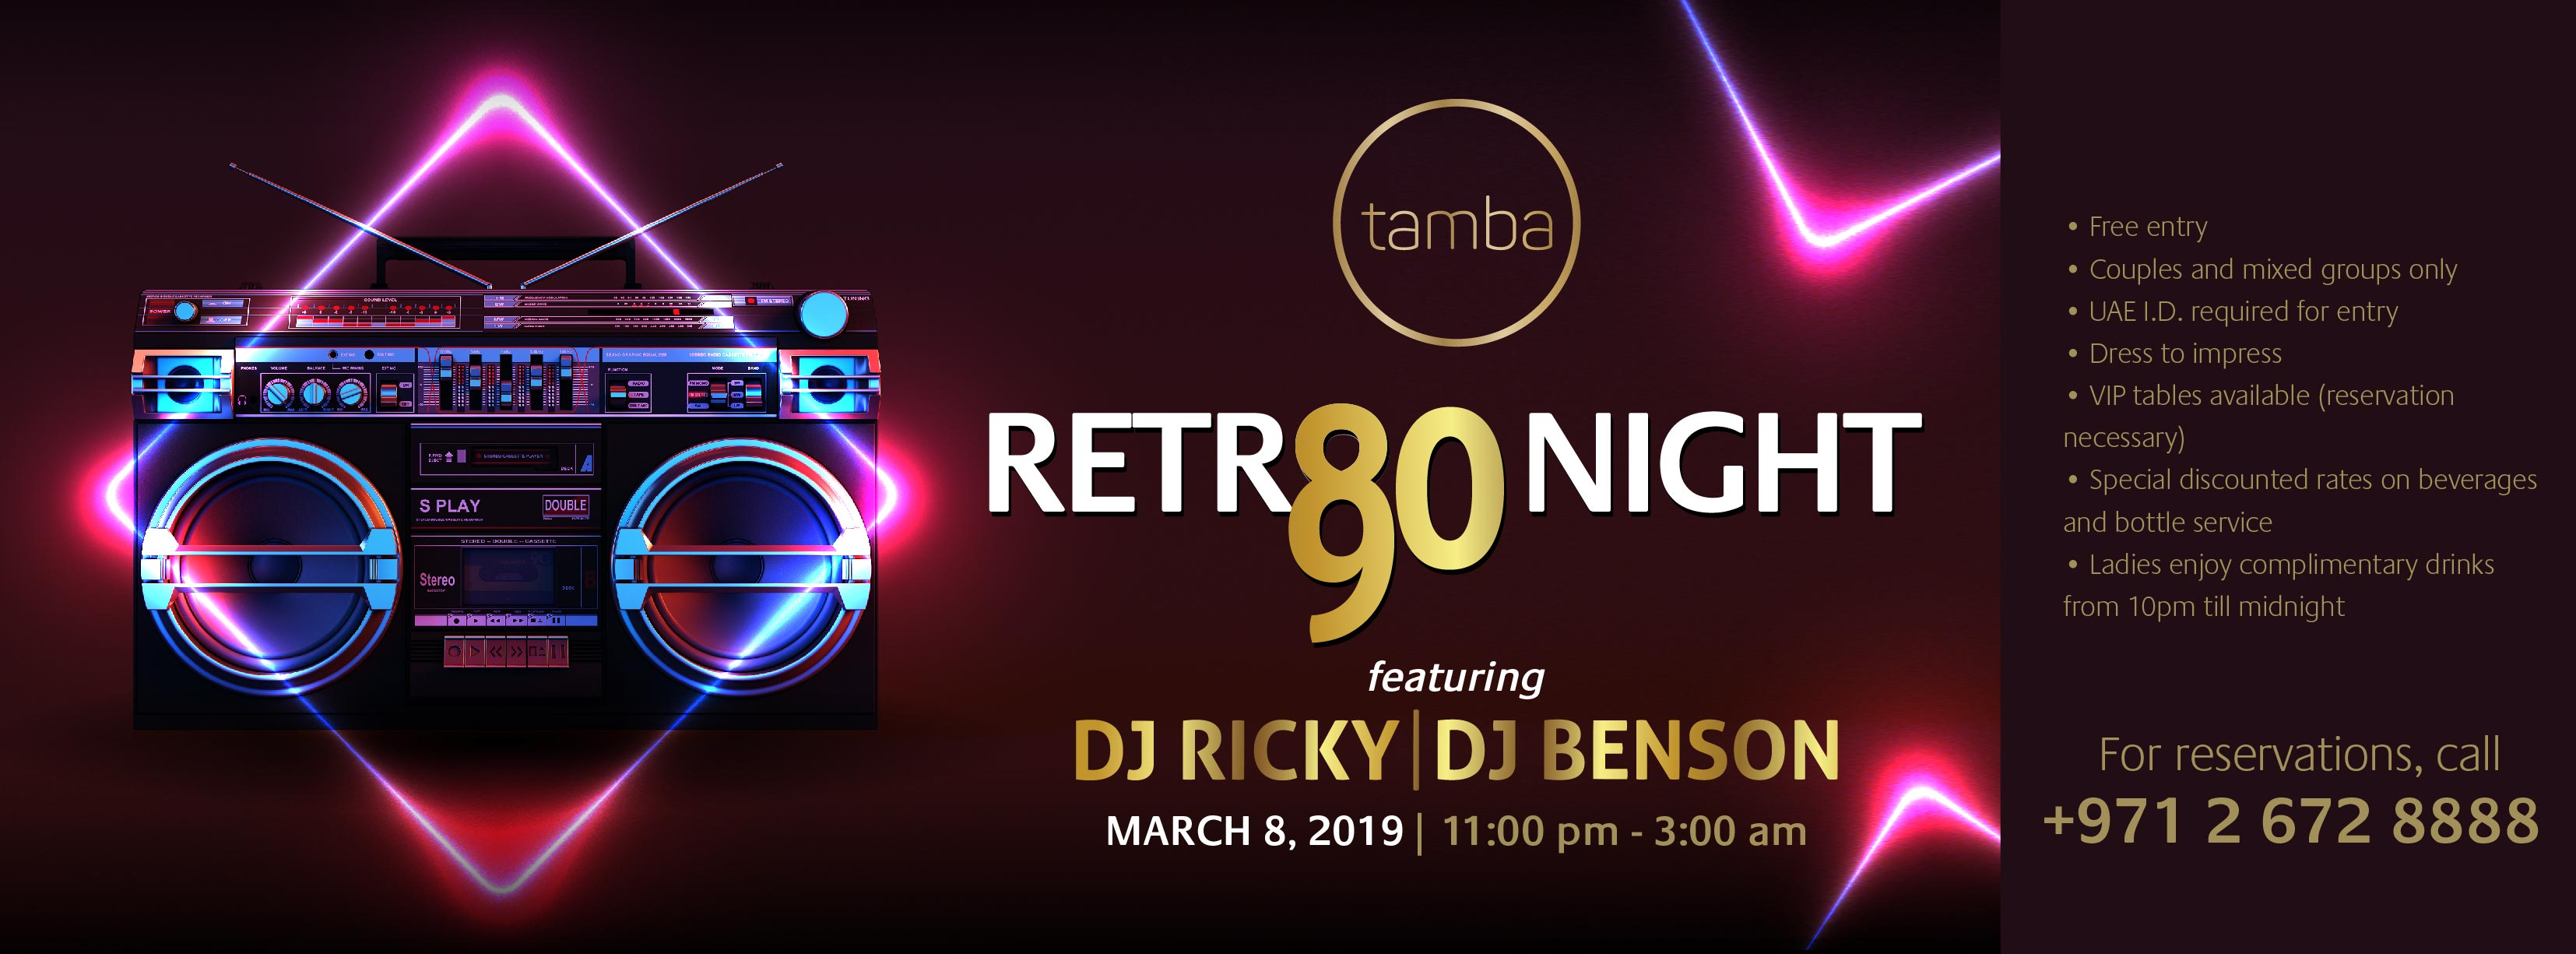 Retro Night @ Tamba